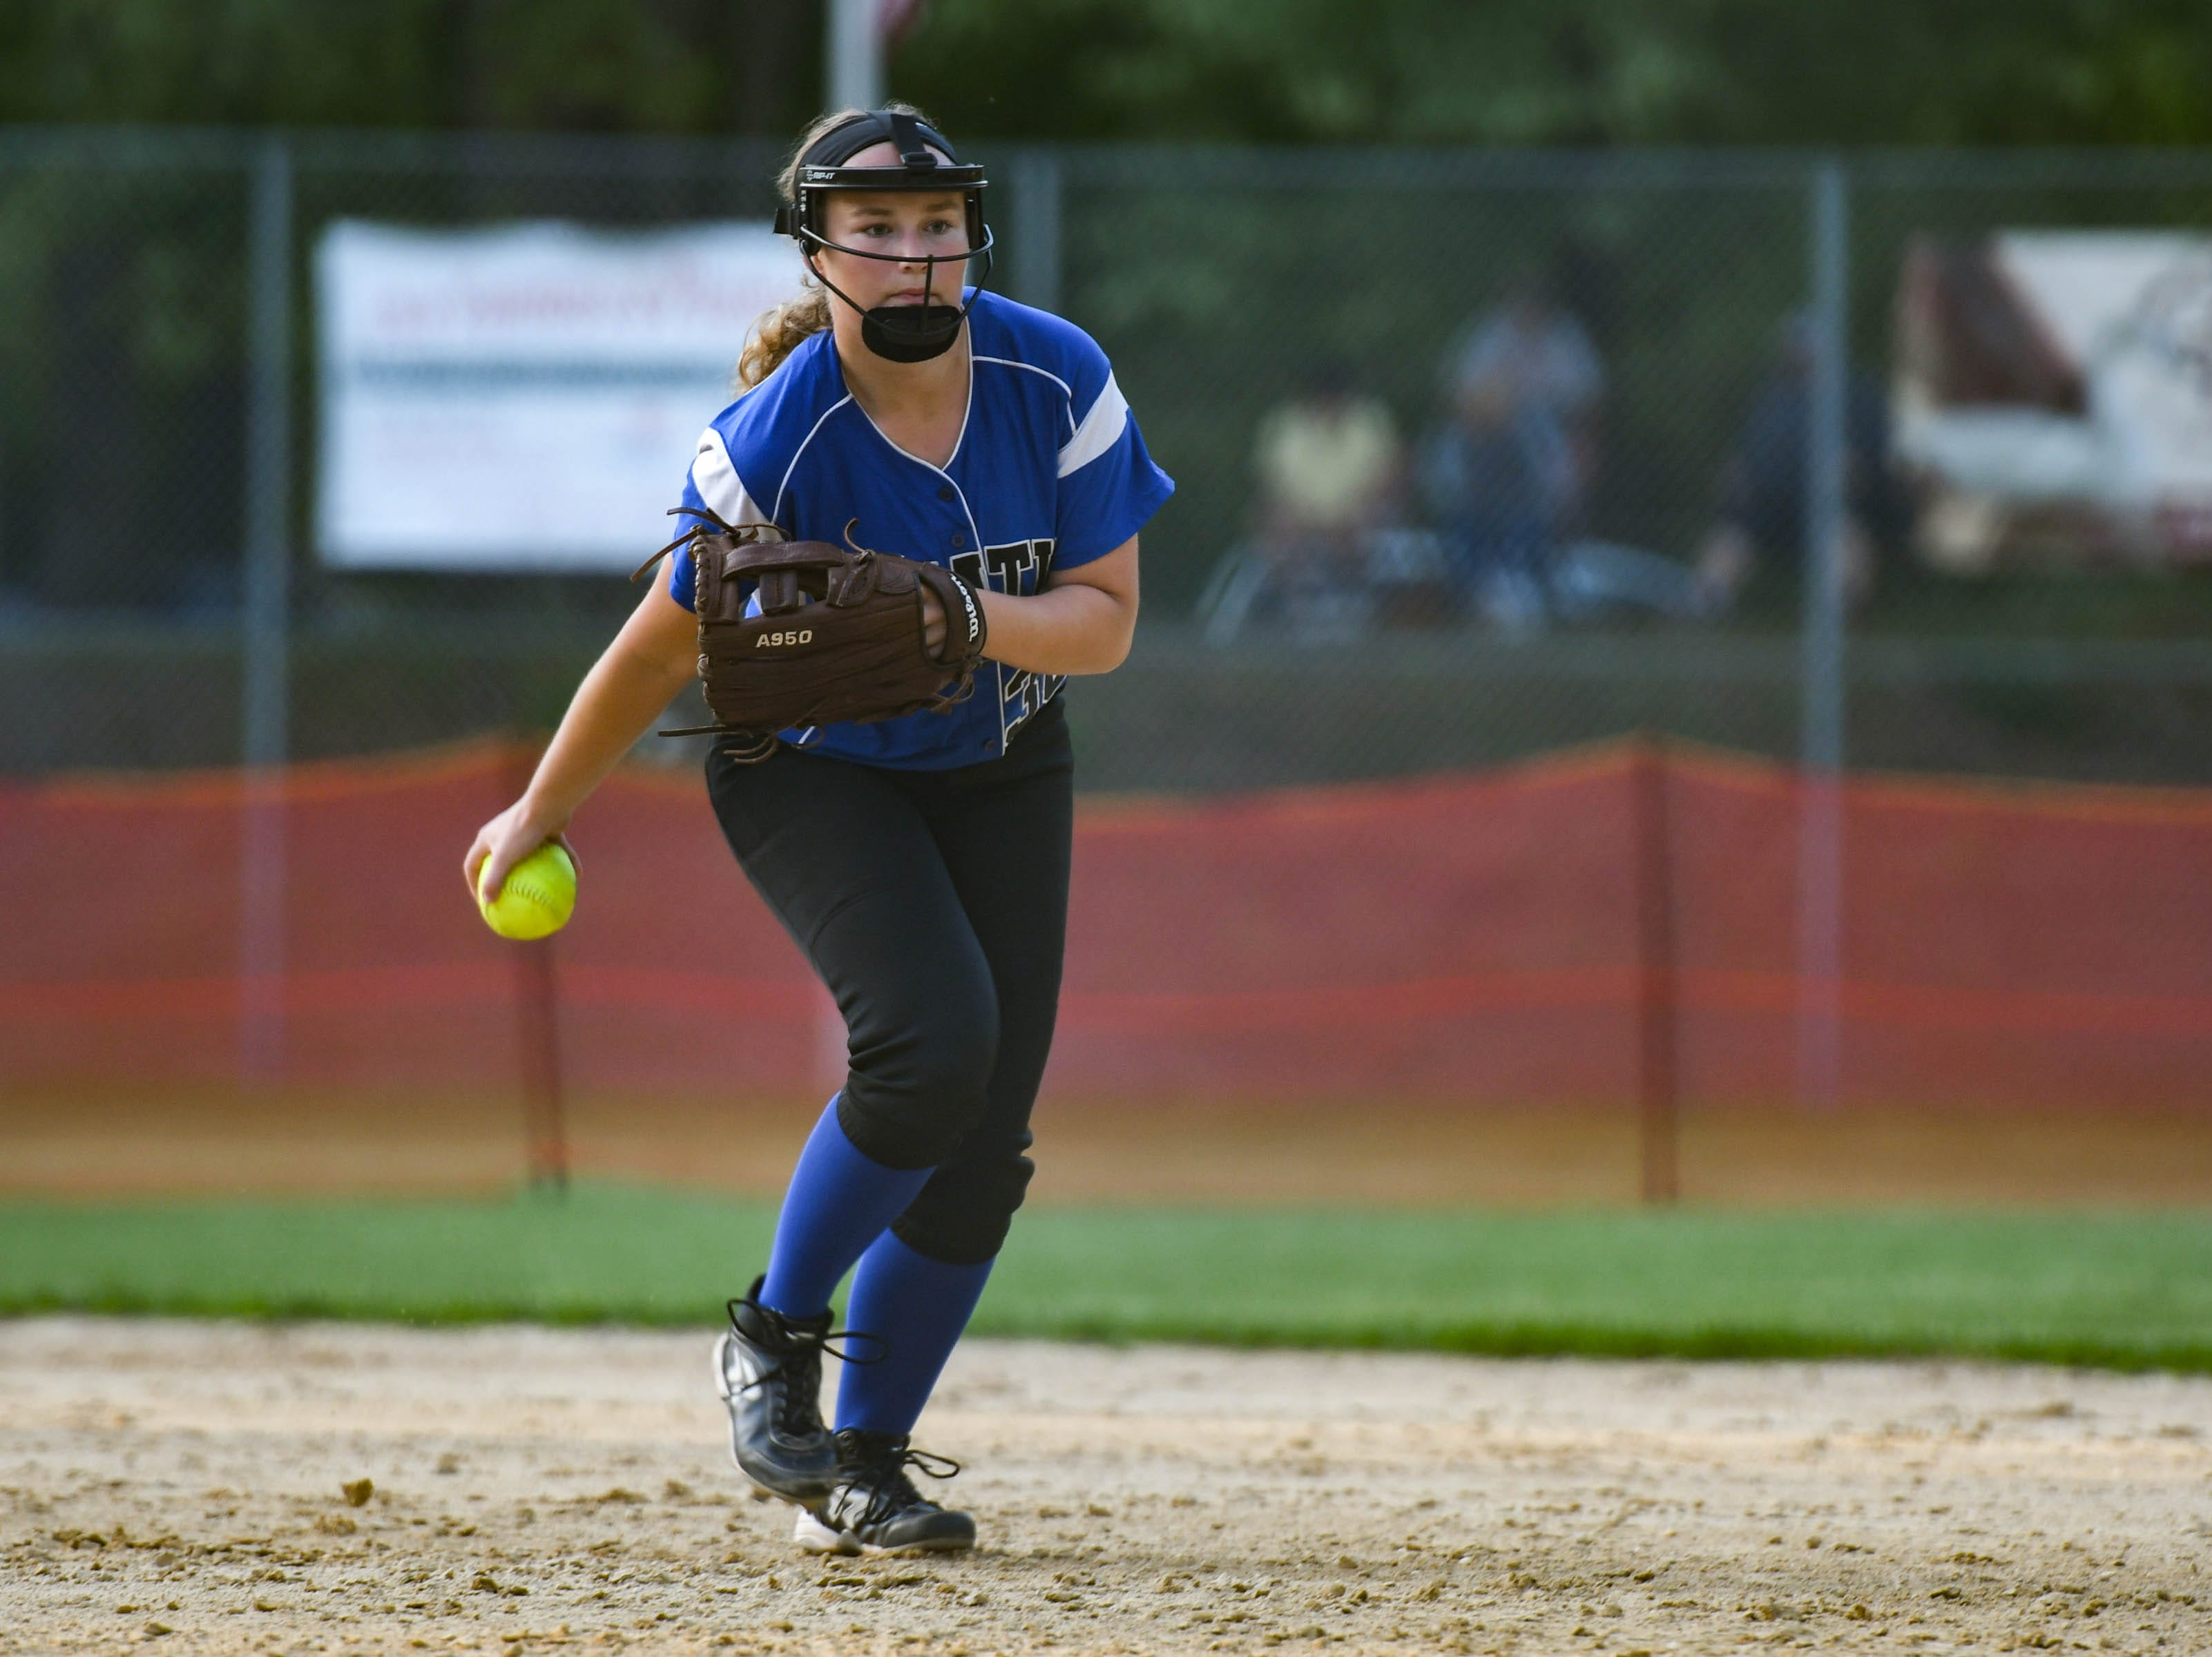 Decatur's Katie Wrench (38) fields a ball against Colonel Richardson in the Bayside Softball Championship game on Wednesday, May 8, 2019. Decatur prevailed with a score of 4 to 1.